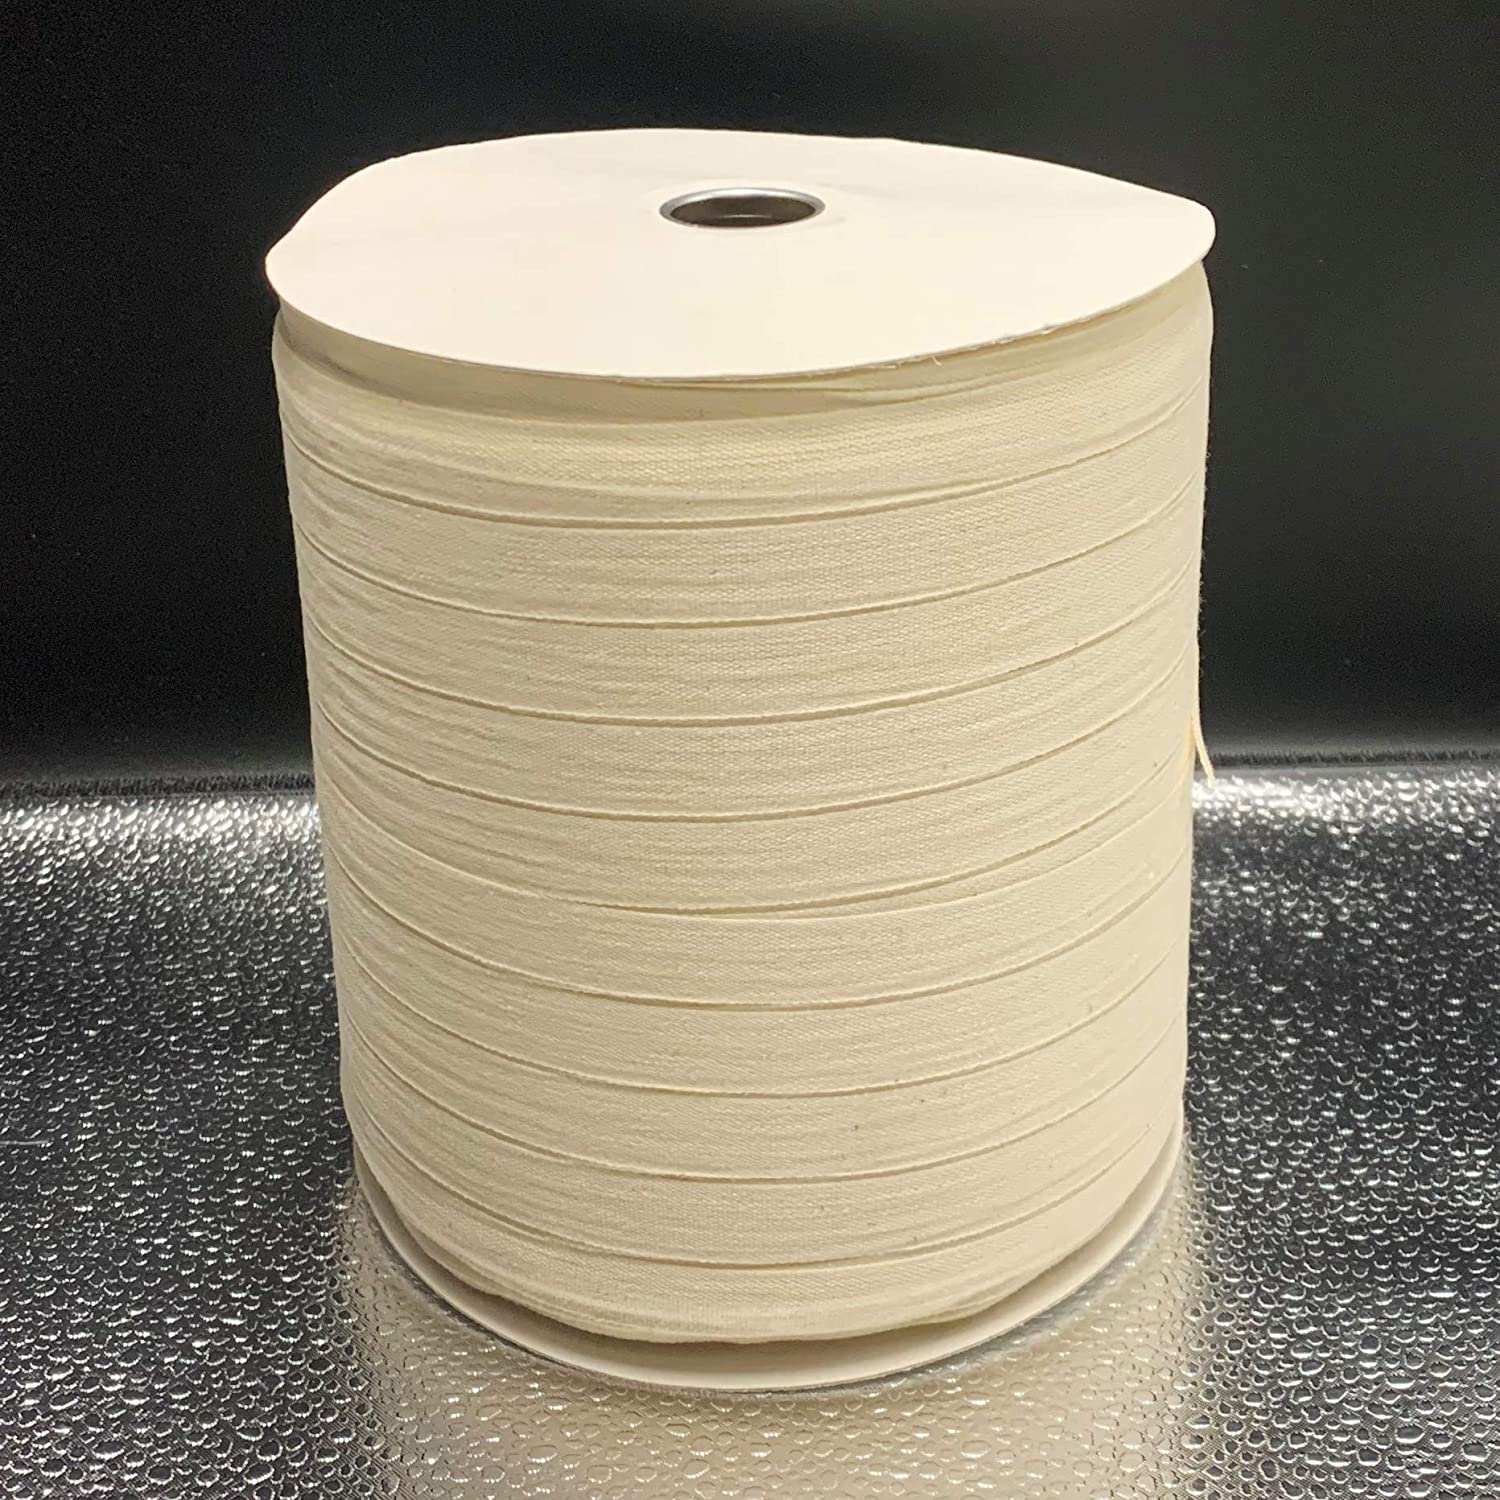 144 Yards Multiple Widths /& Yardages Available Medium Weight - USA Made 1 White Cotton Twill Tape